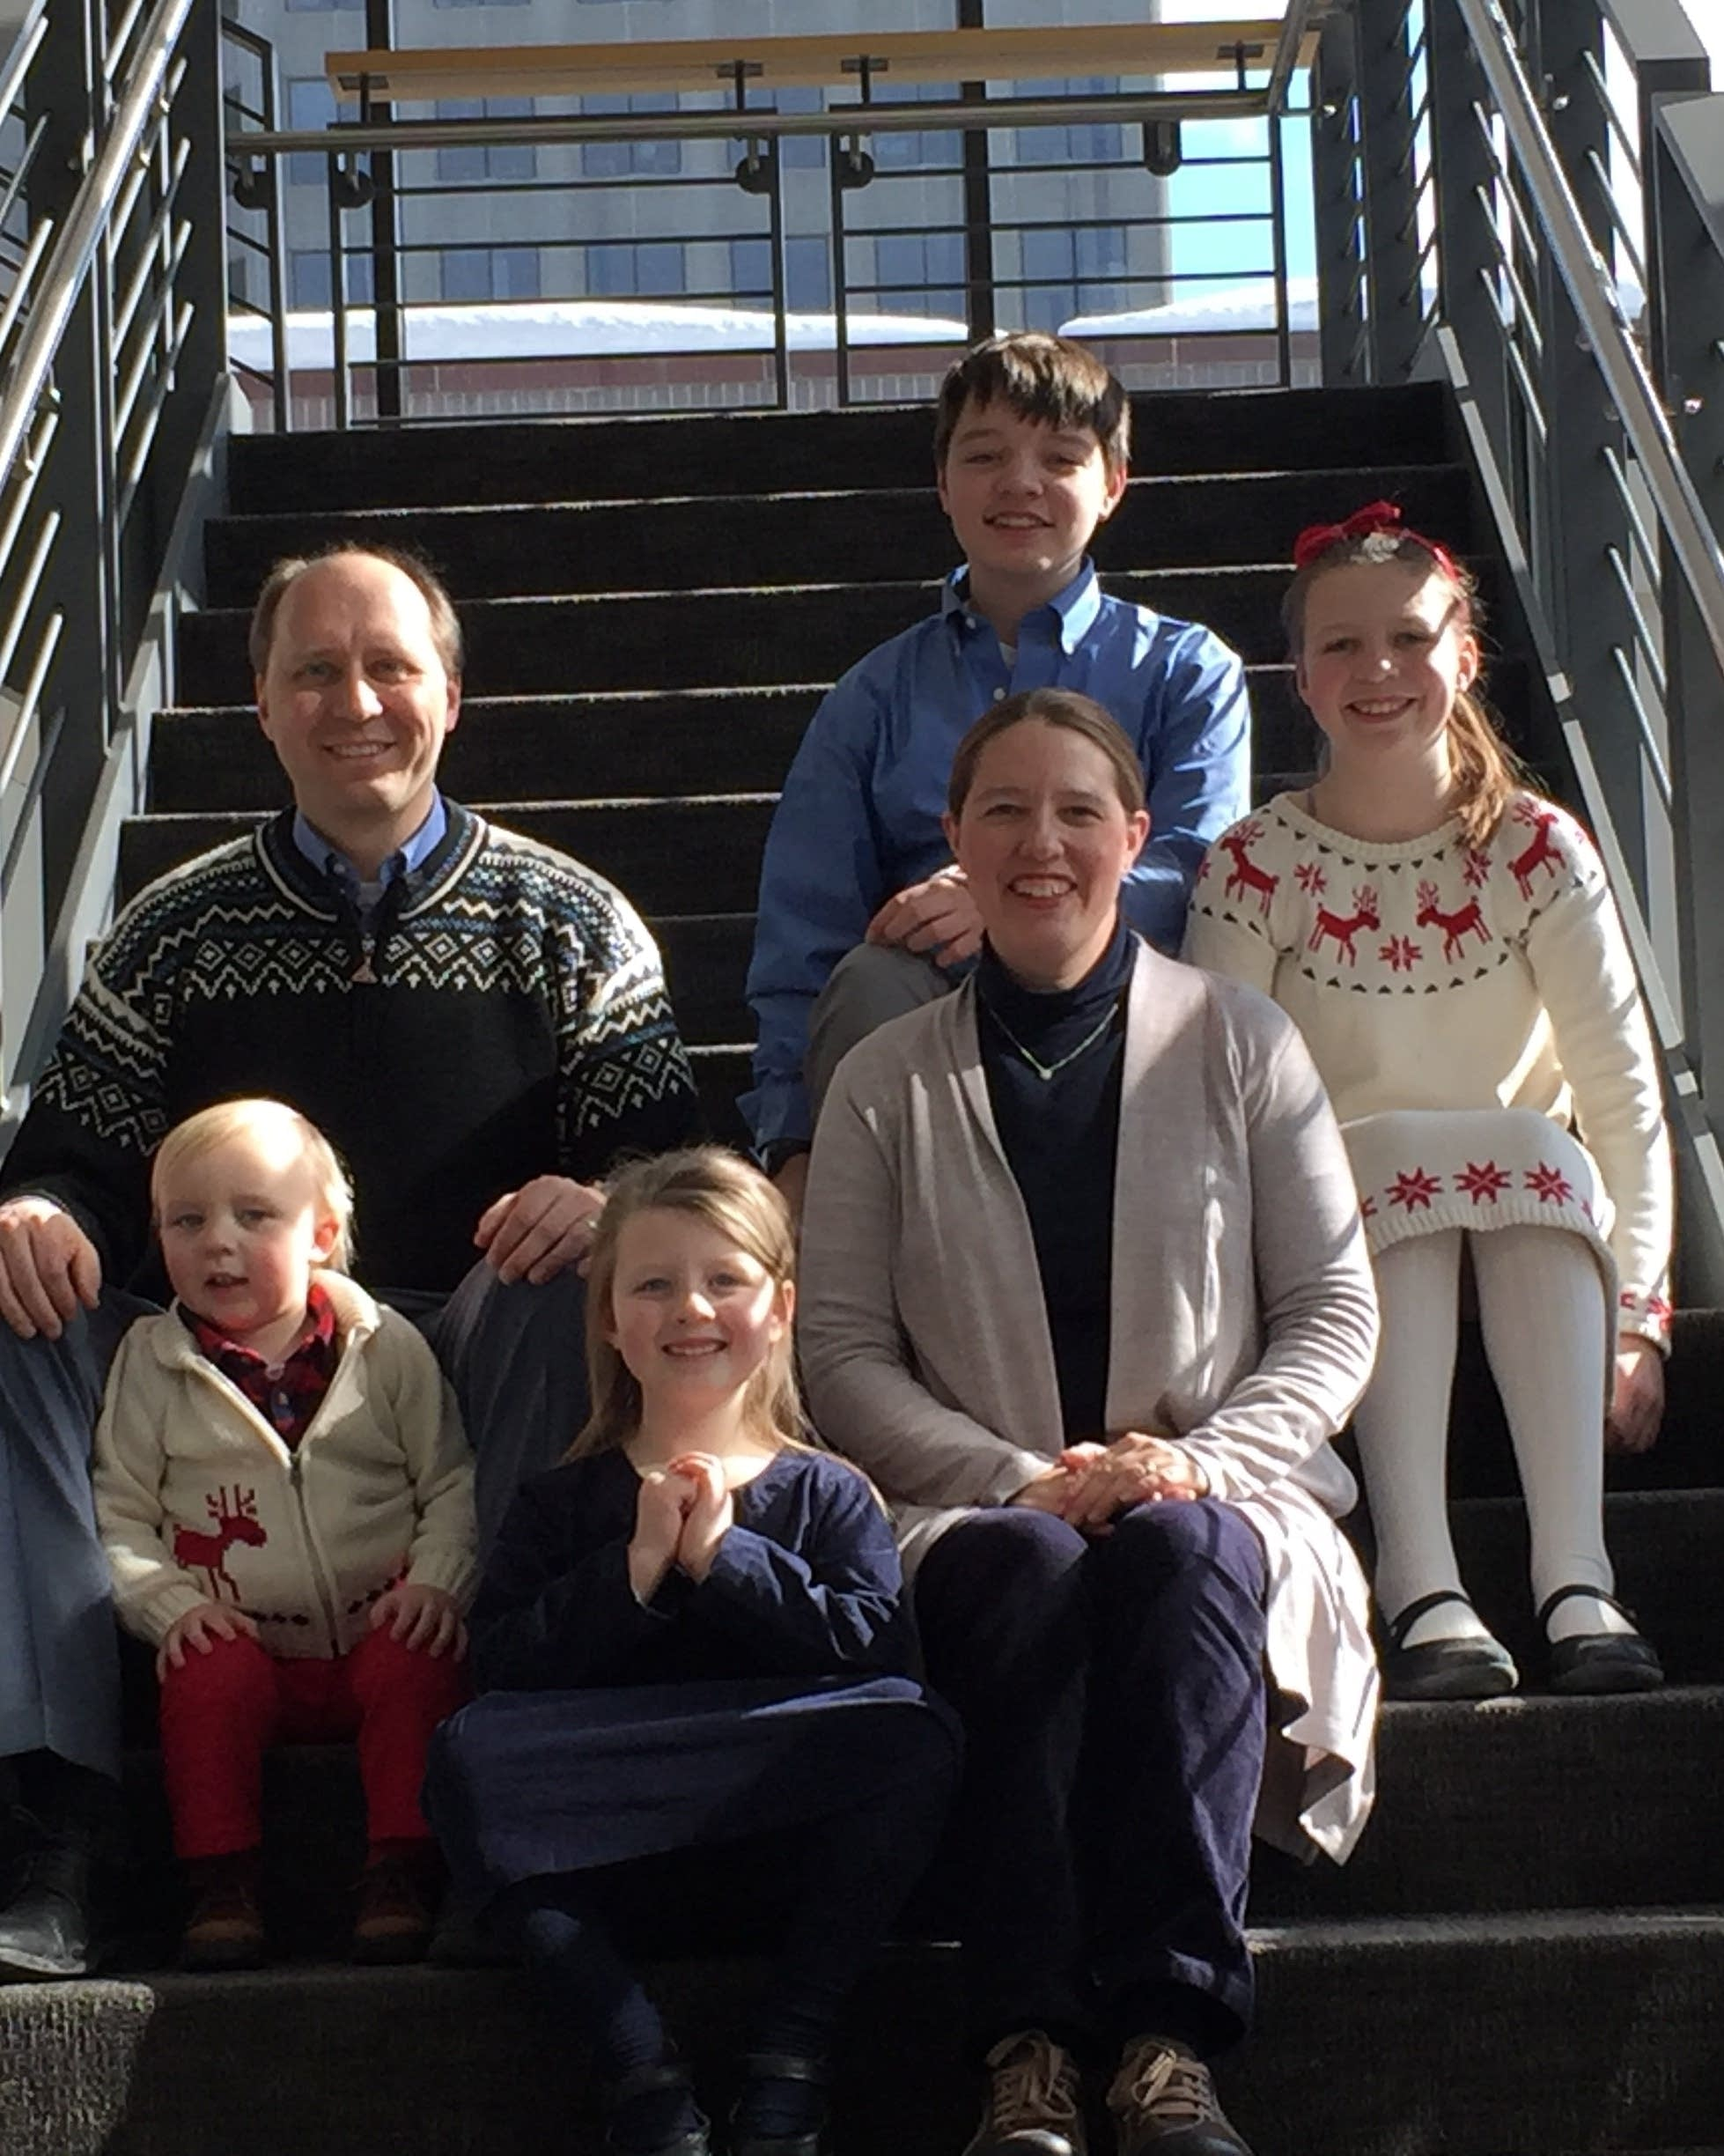 The Monsen Family at MPR